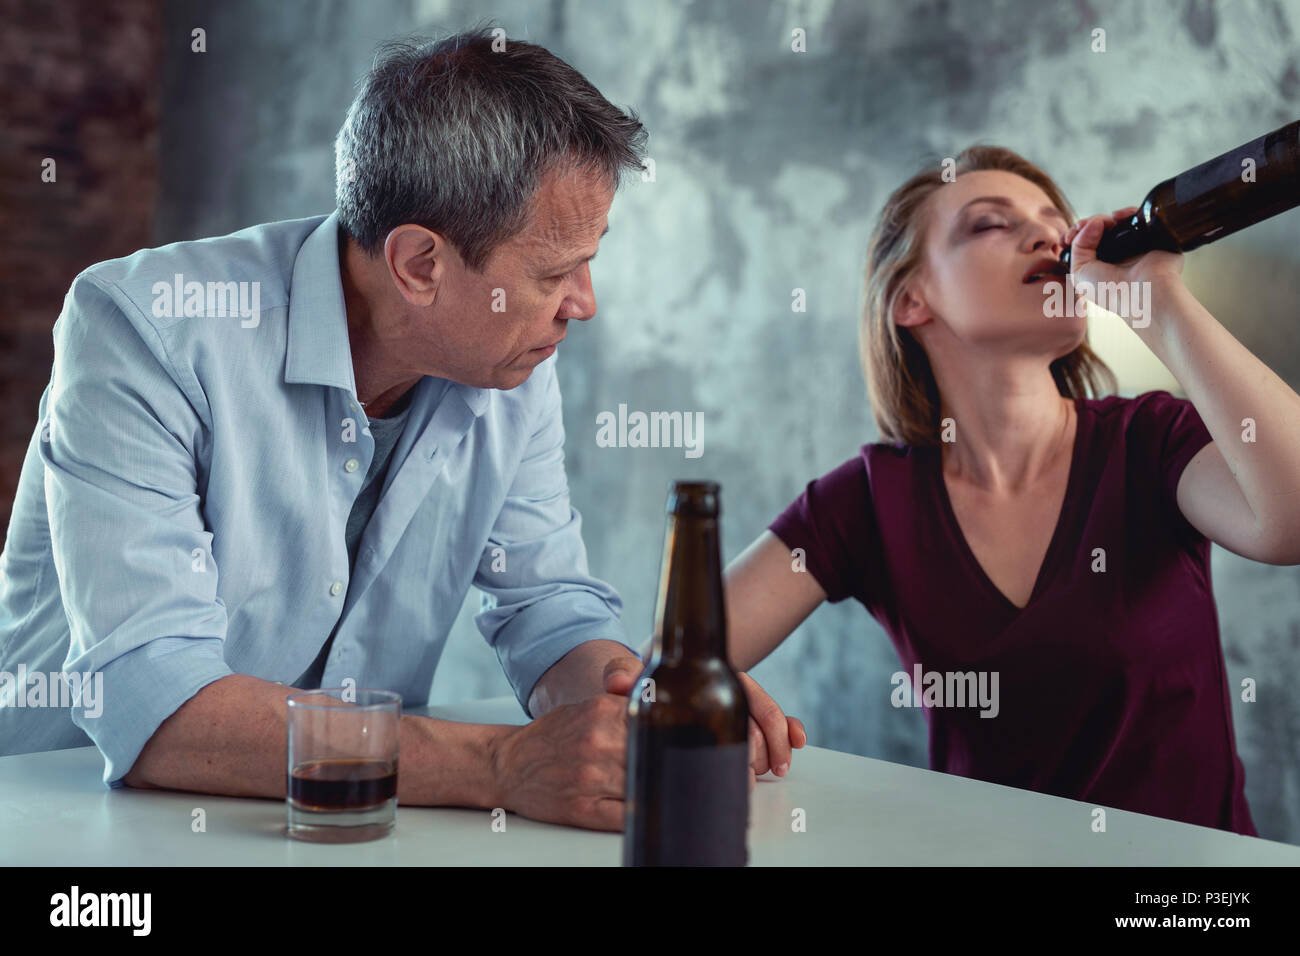 White collar worker feeling concerned looking at drunk wife - Stock Image